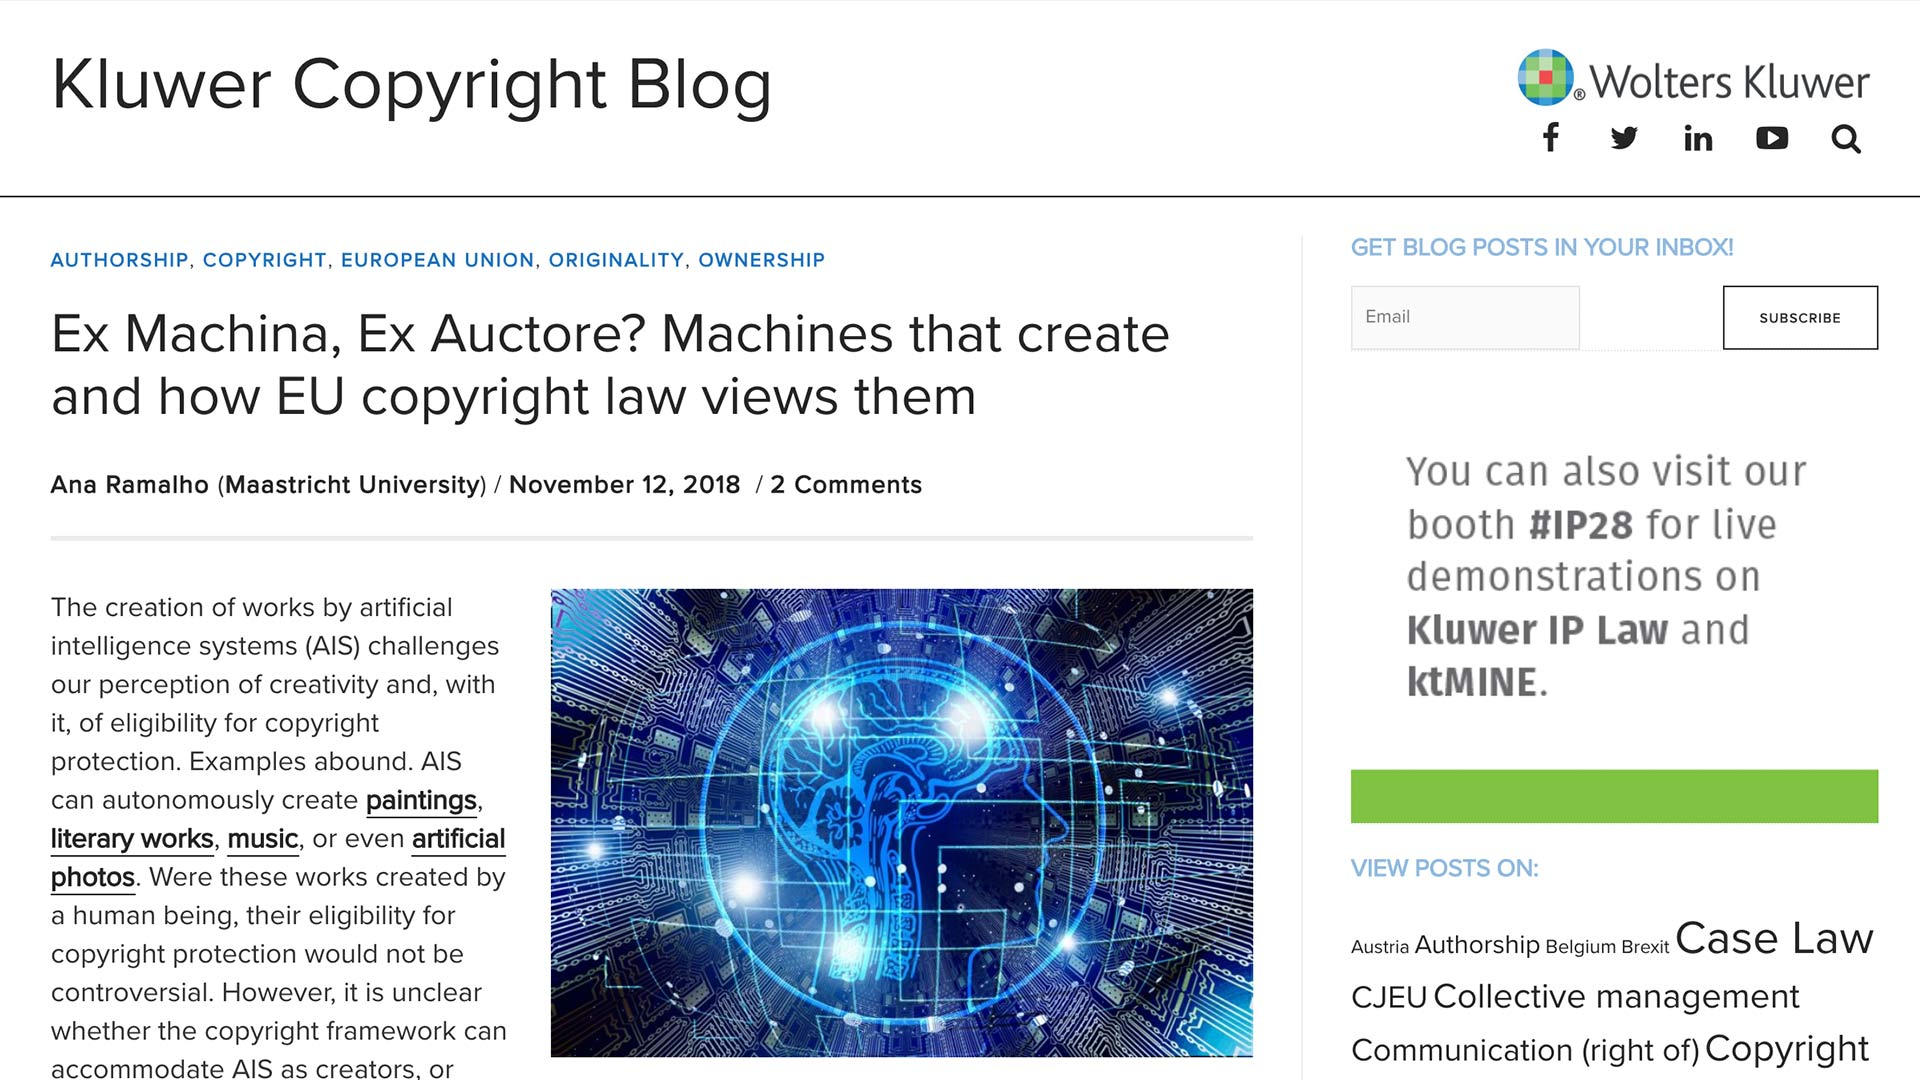 Fairness Rocks News Ex Machina, Ex Auctore? Machines that create and how EU copyright law views them